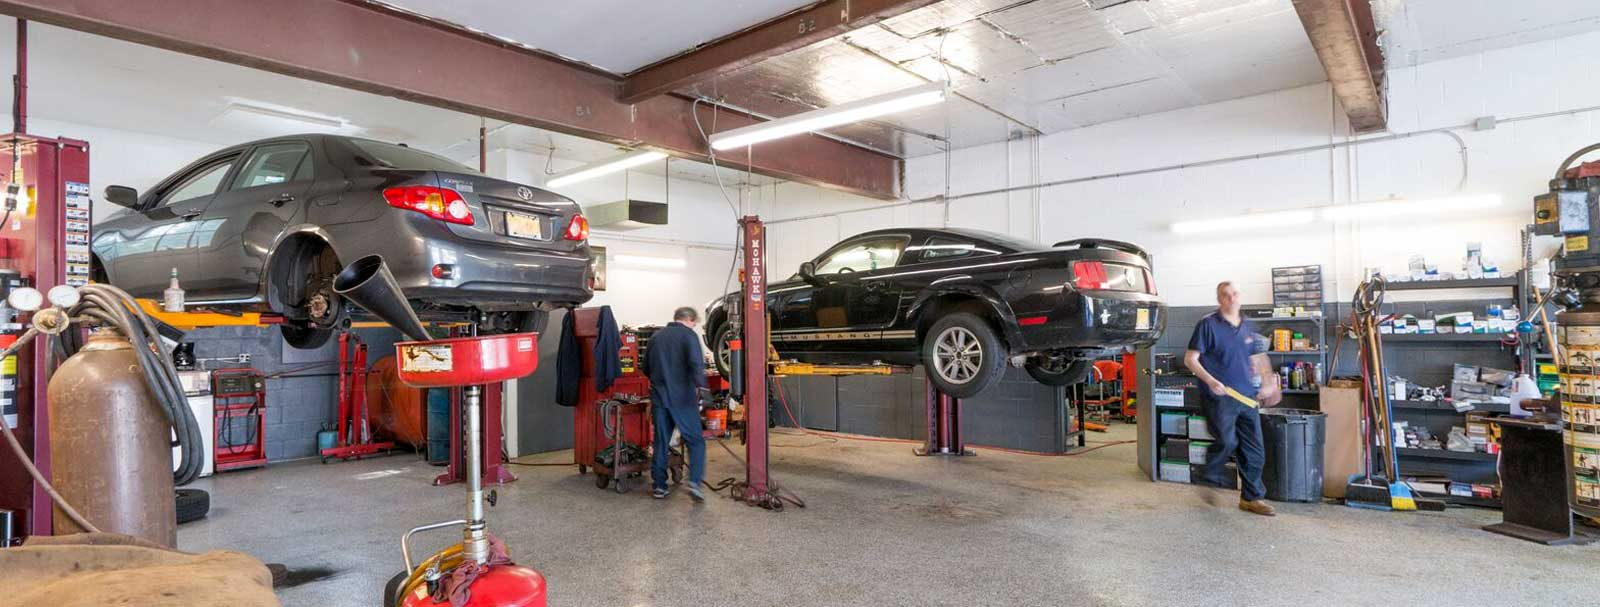 Milelli's Auto Repair & Towing's Service Bays